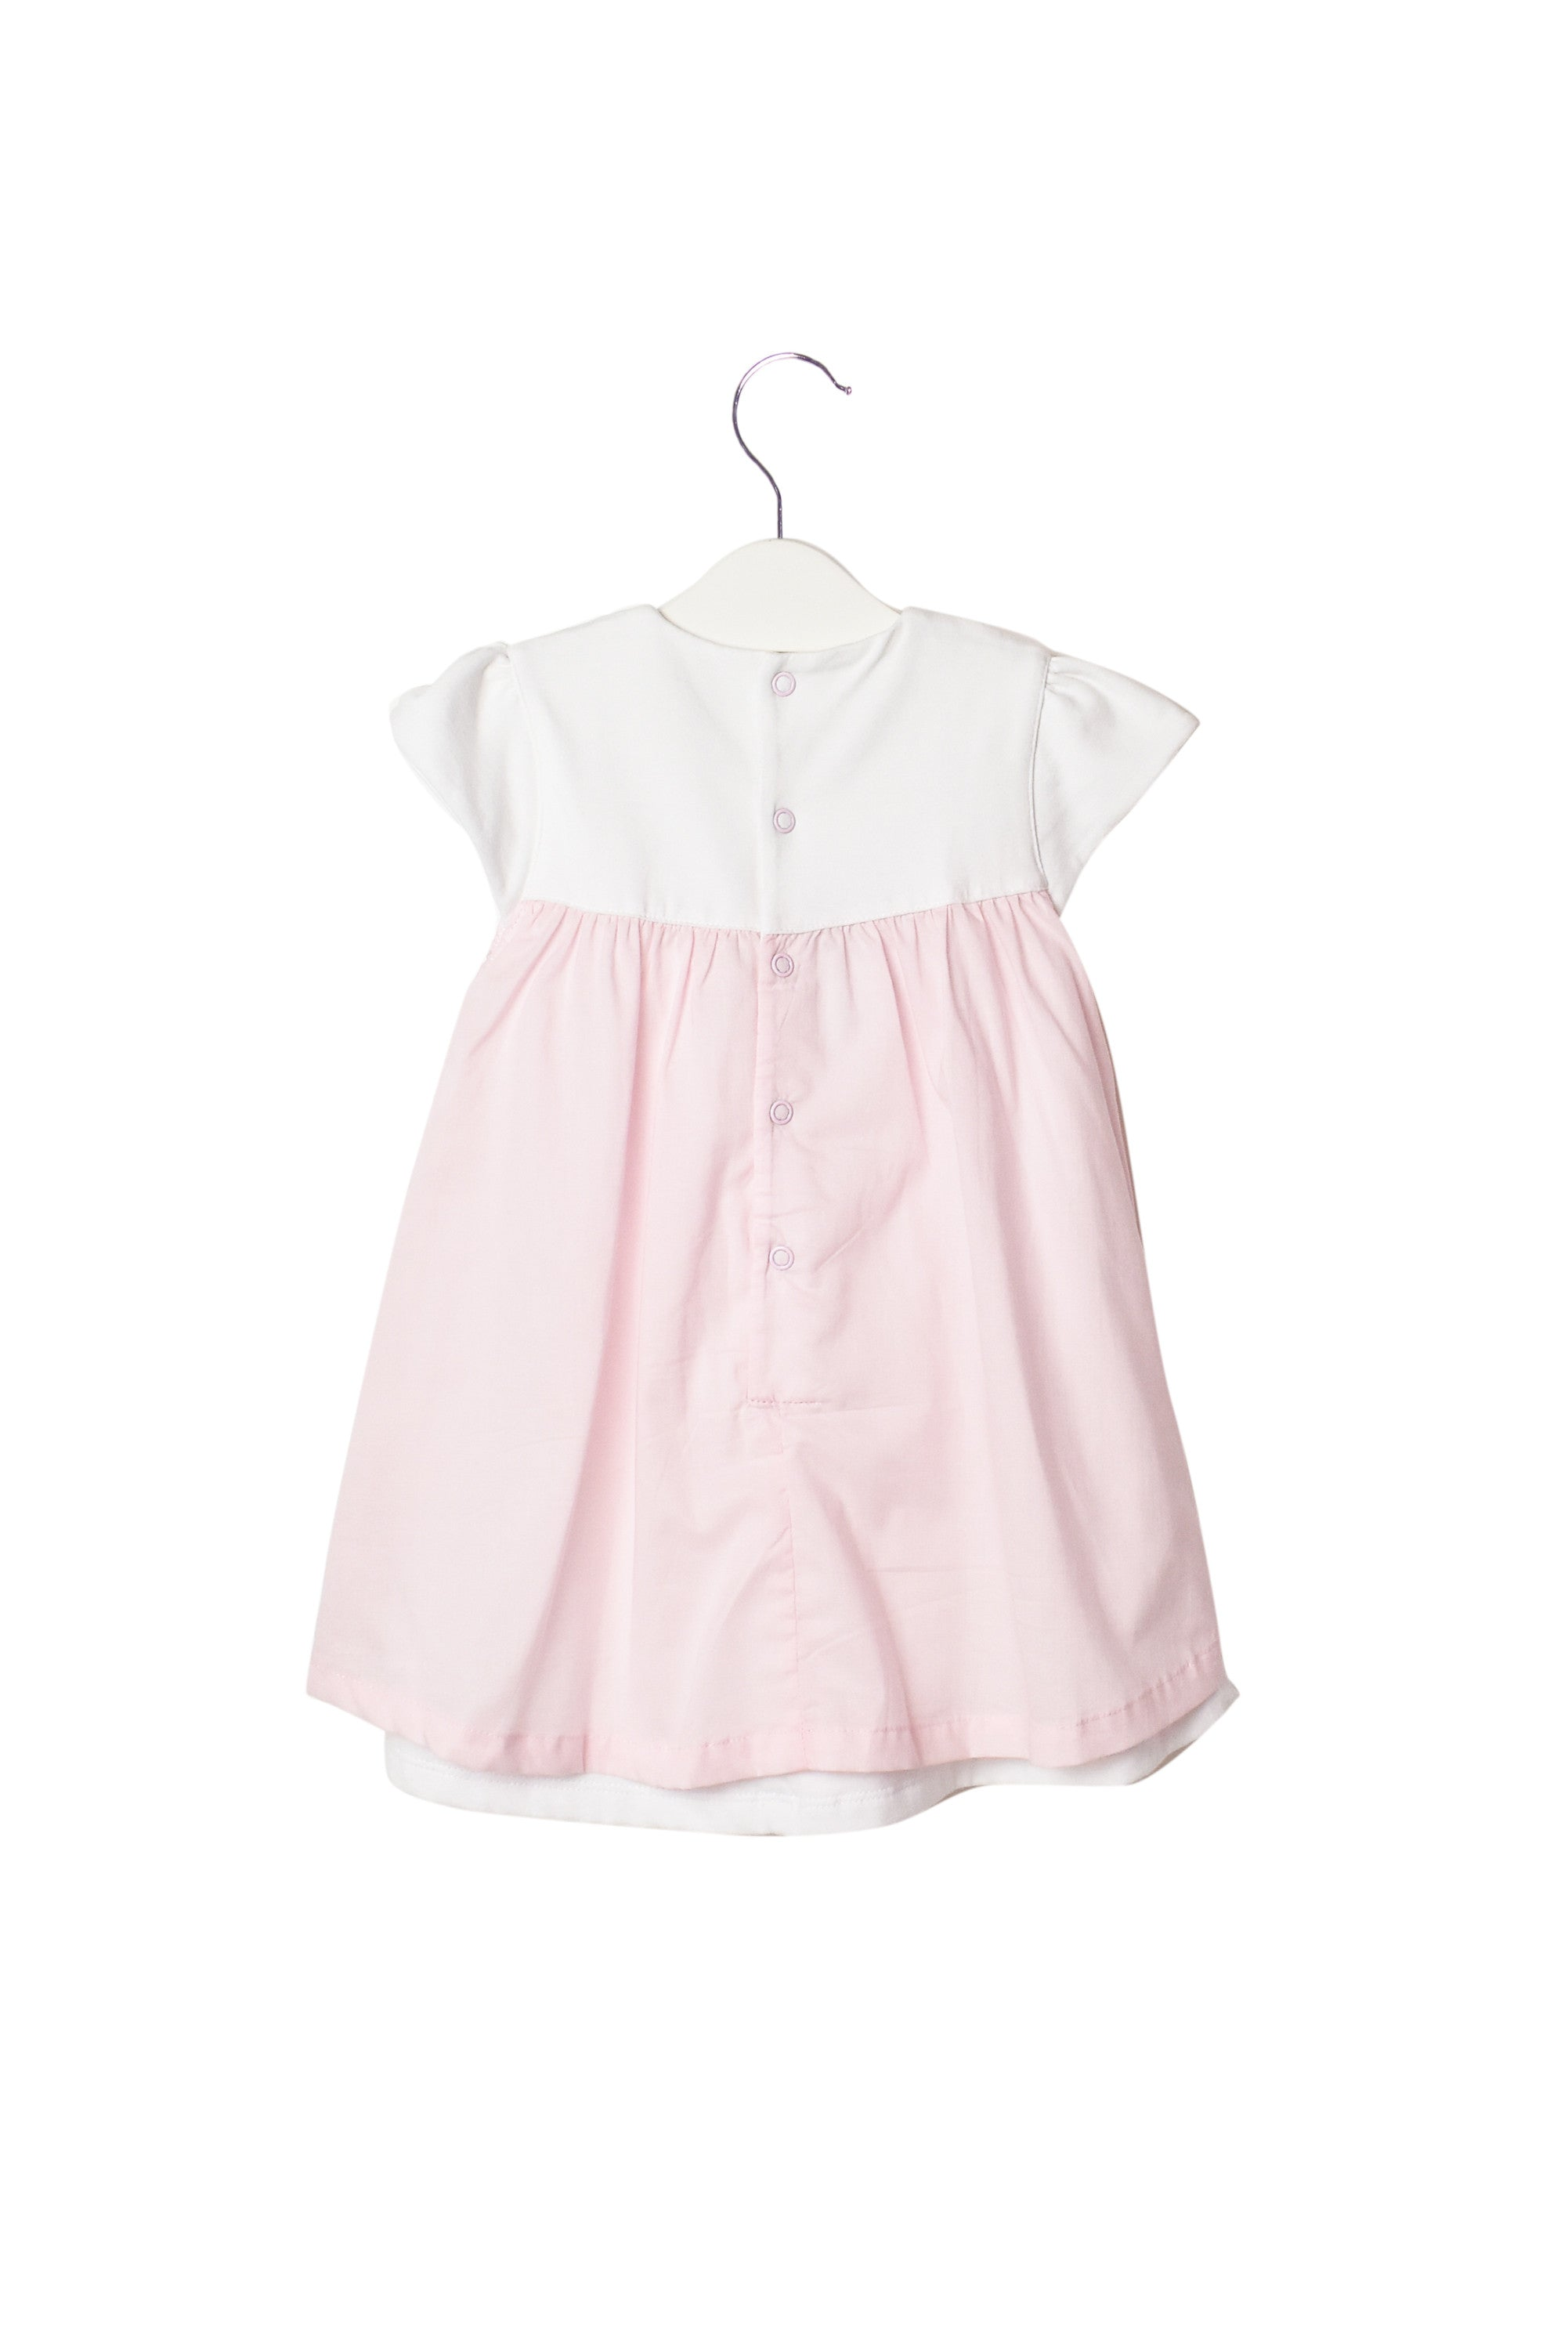 RF10004921 Emile et Rose Baby~Dress and Bloomer 12M at Retykle